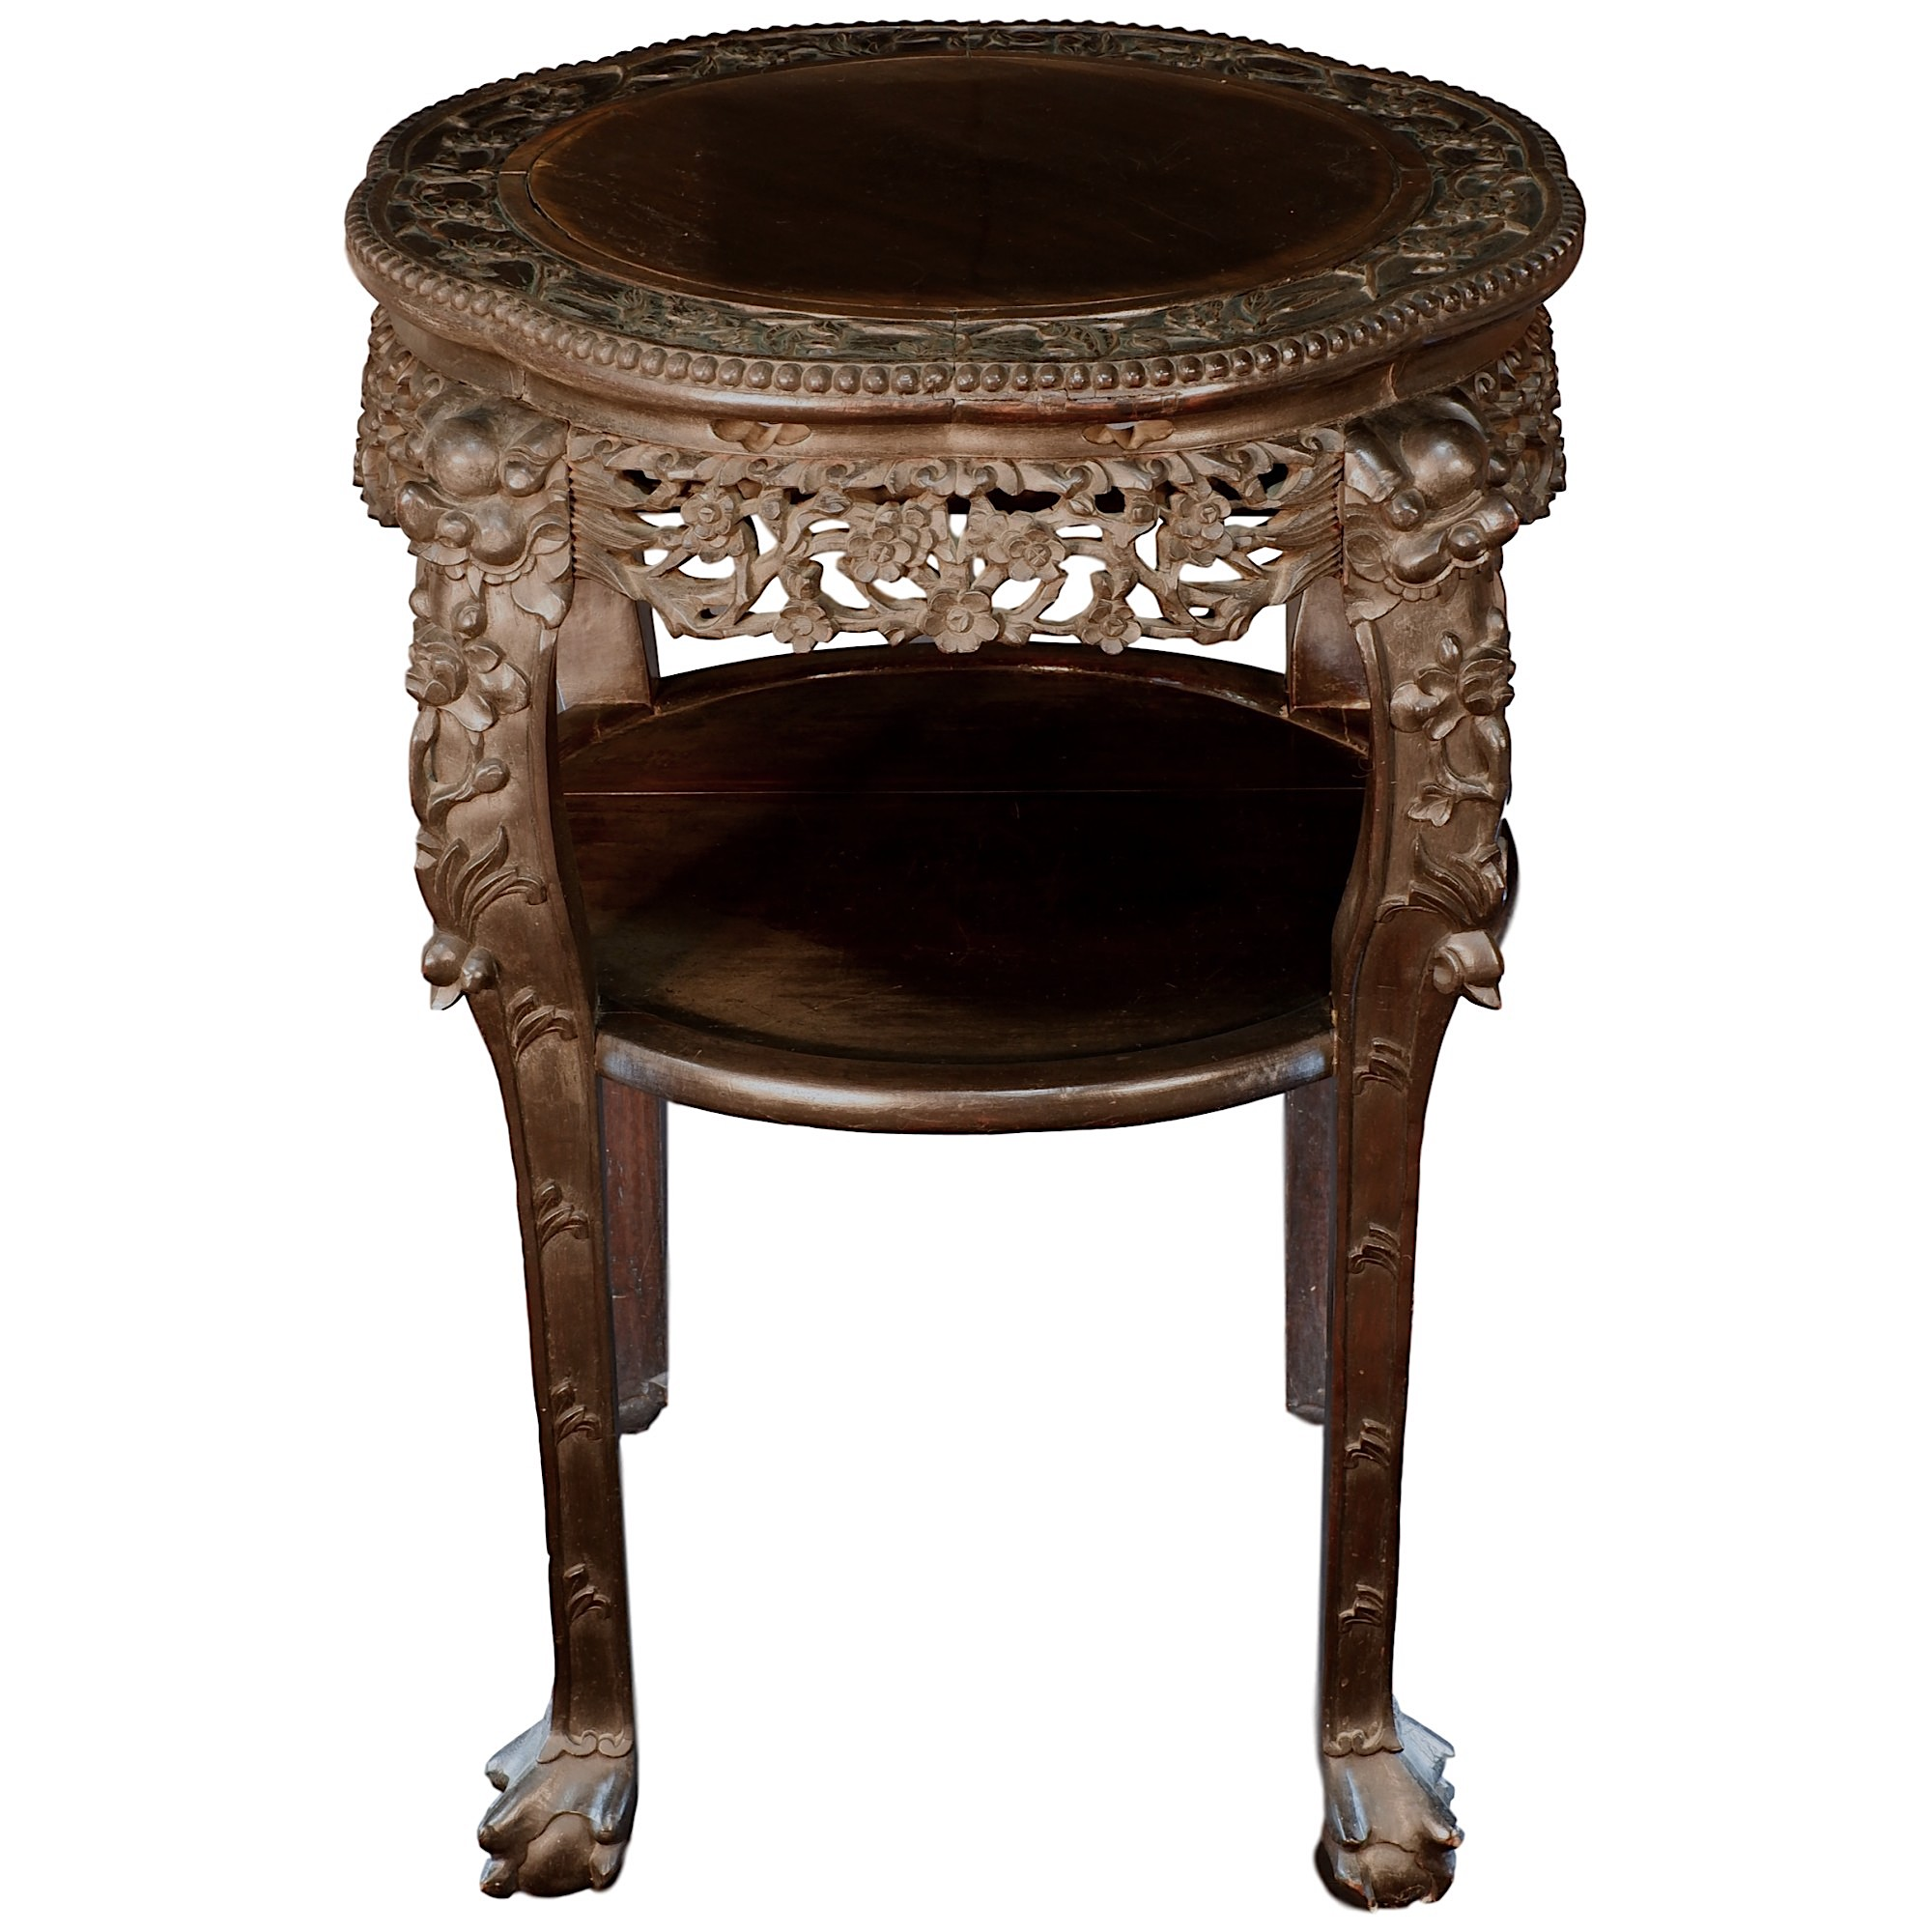 'Antique Chinese Export Carved and Stained Hongmu Tiered Lamp Table, Late 19th to Early 20th Century'